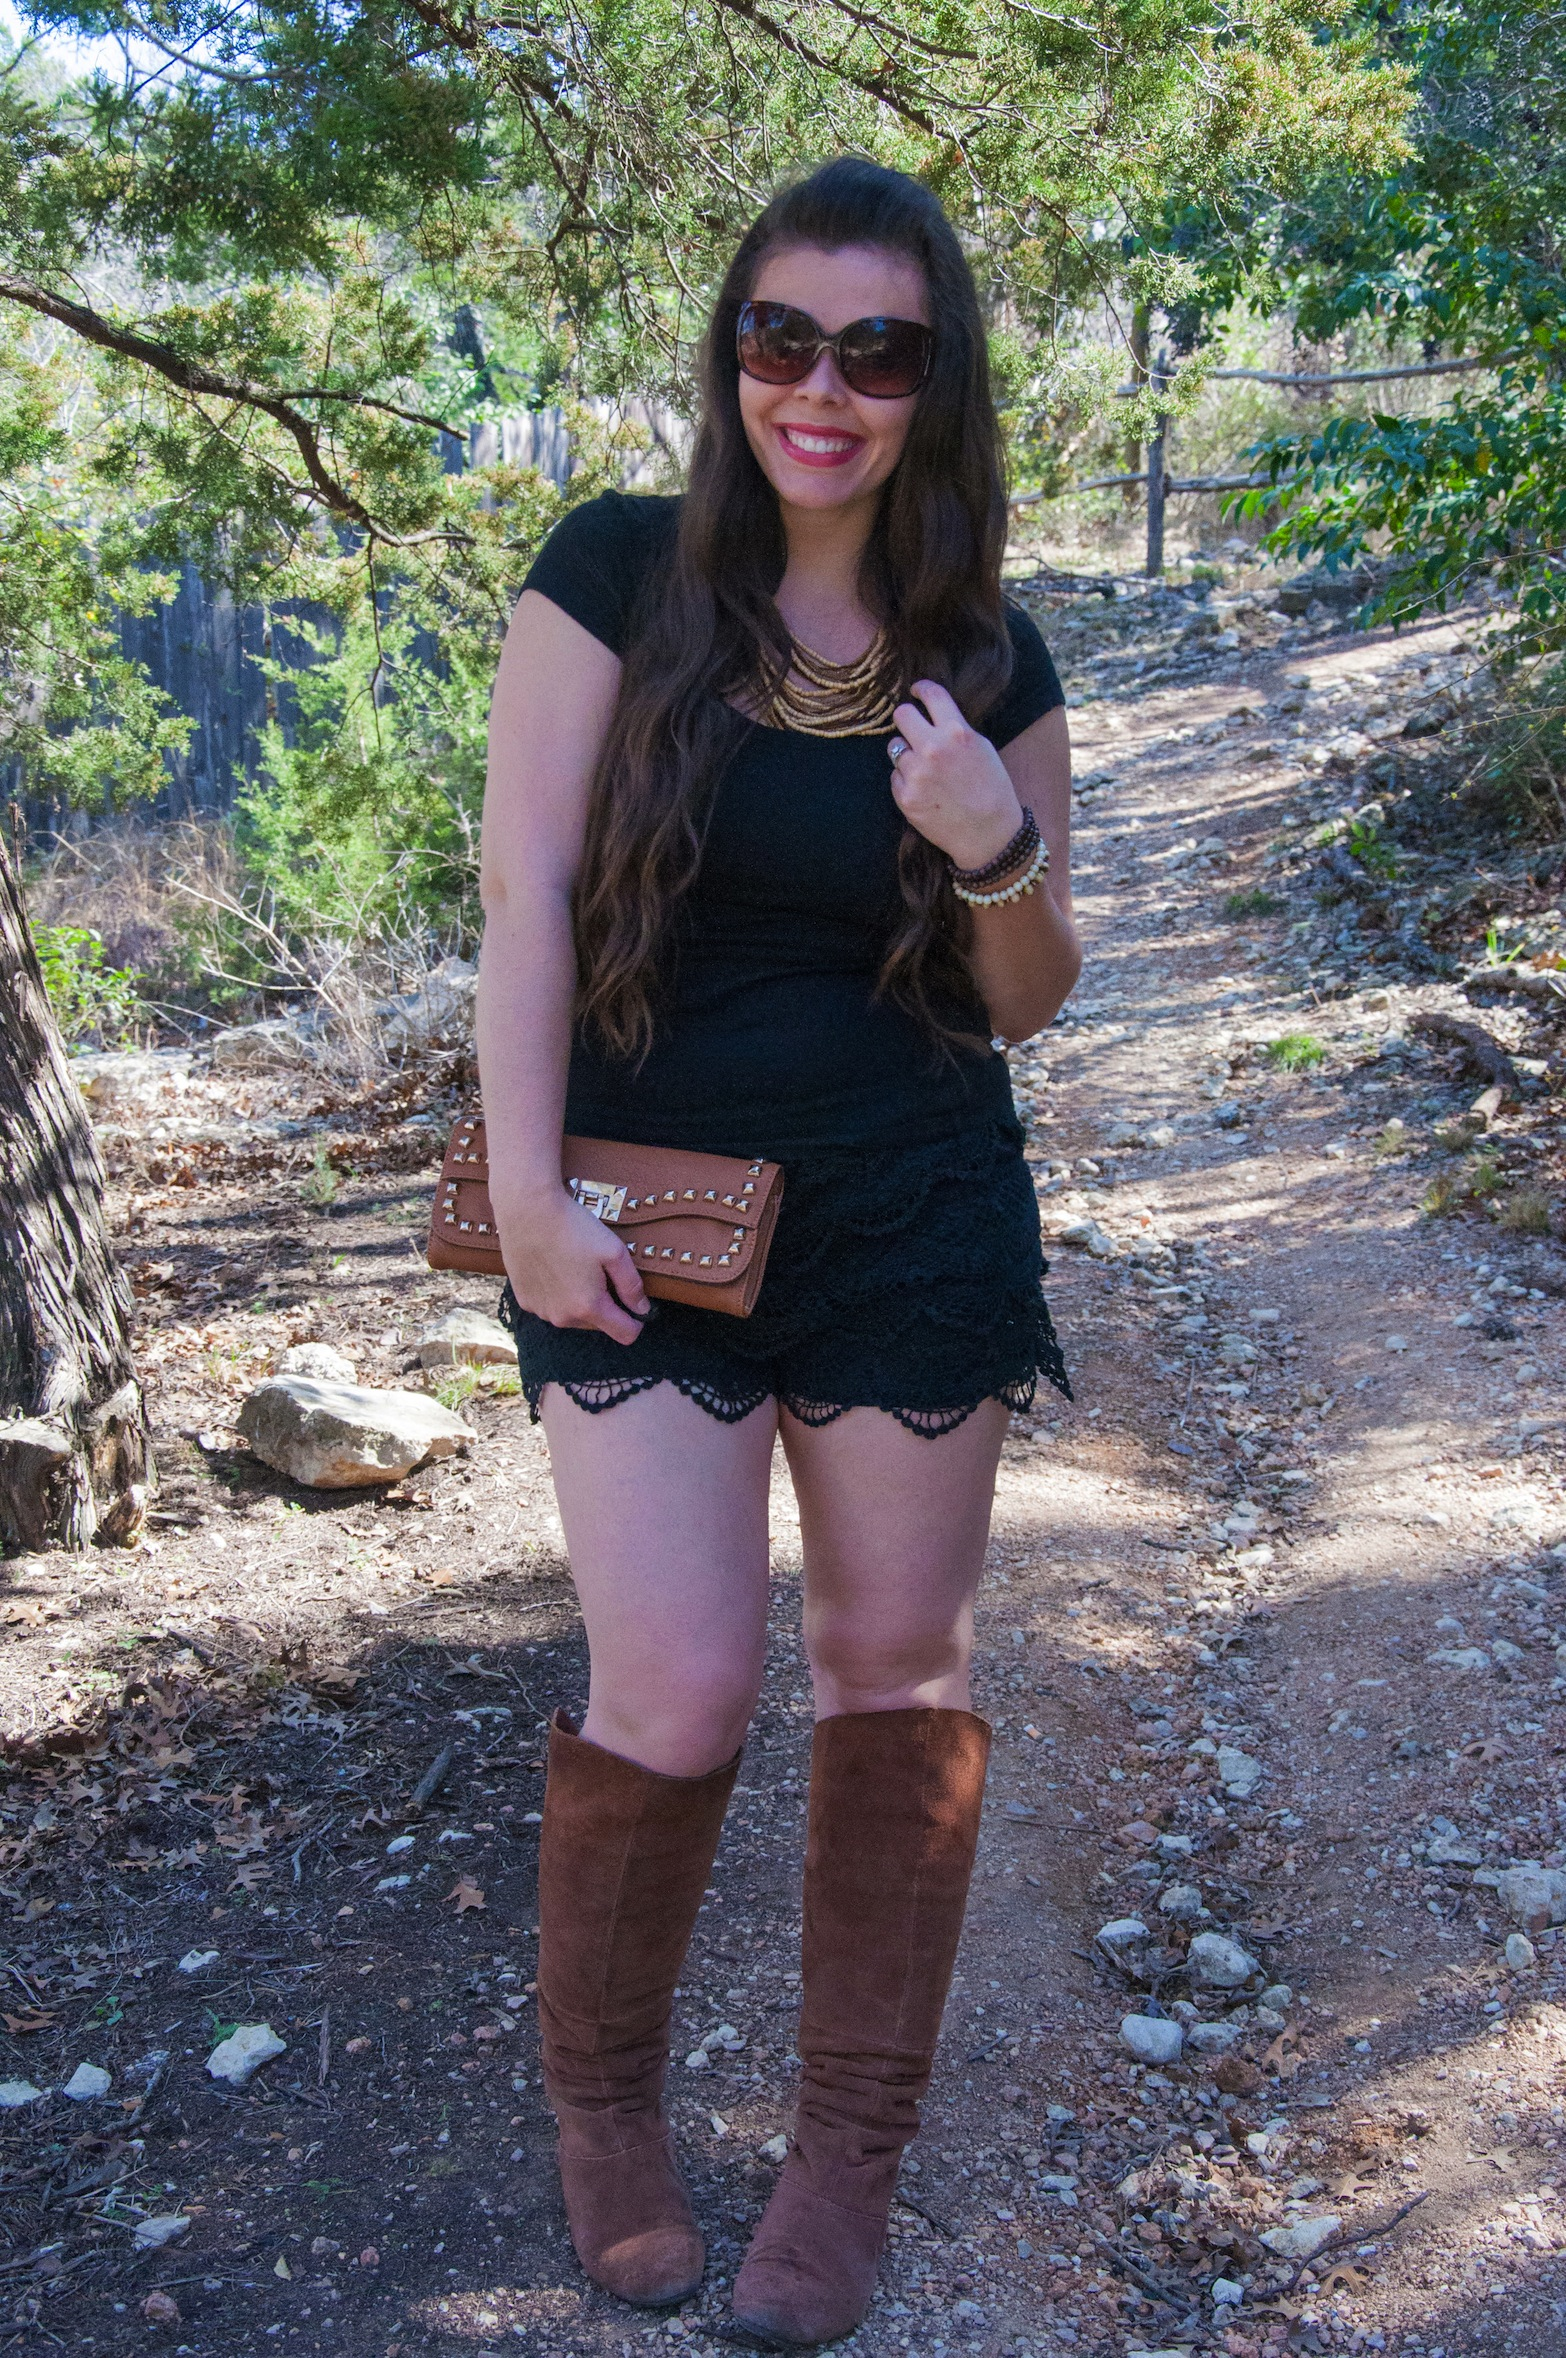 Black outfit with cognac accents